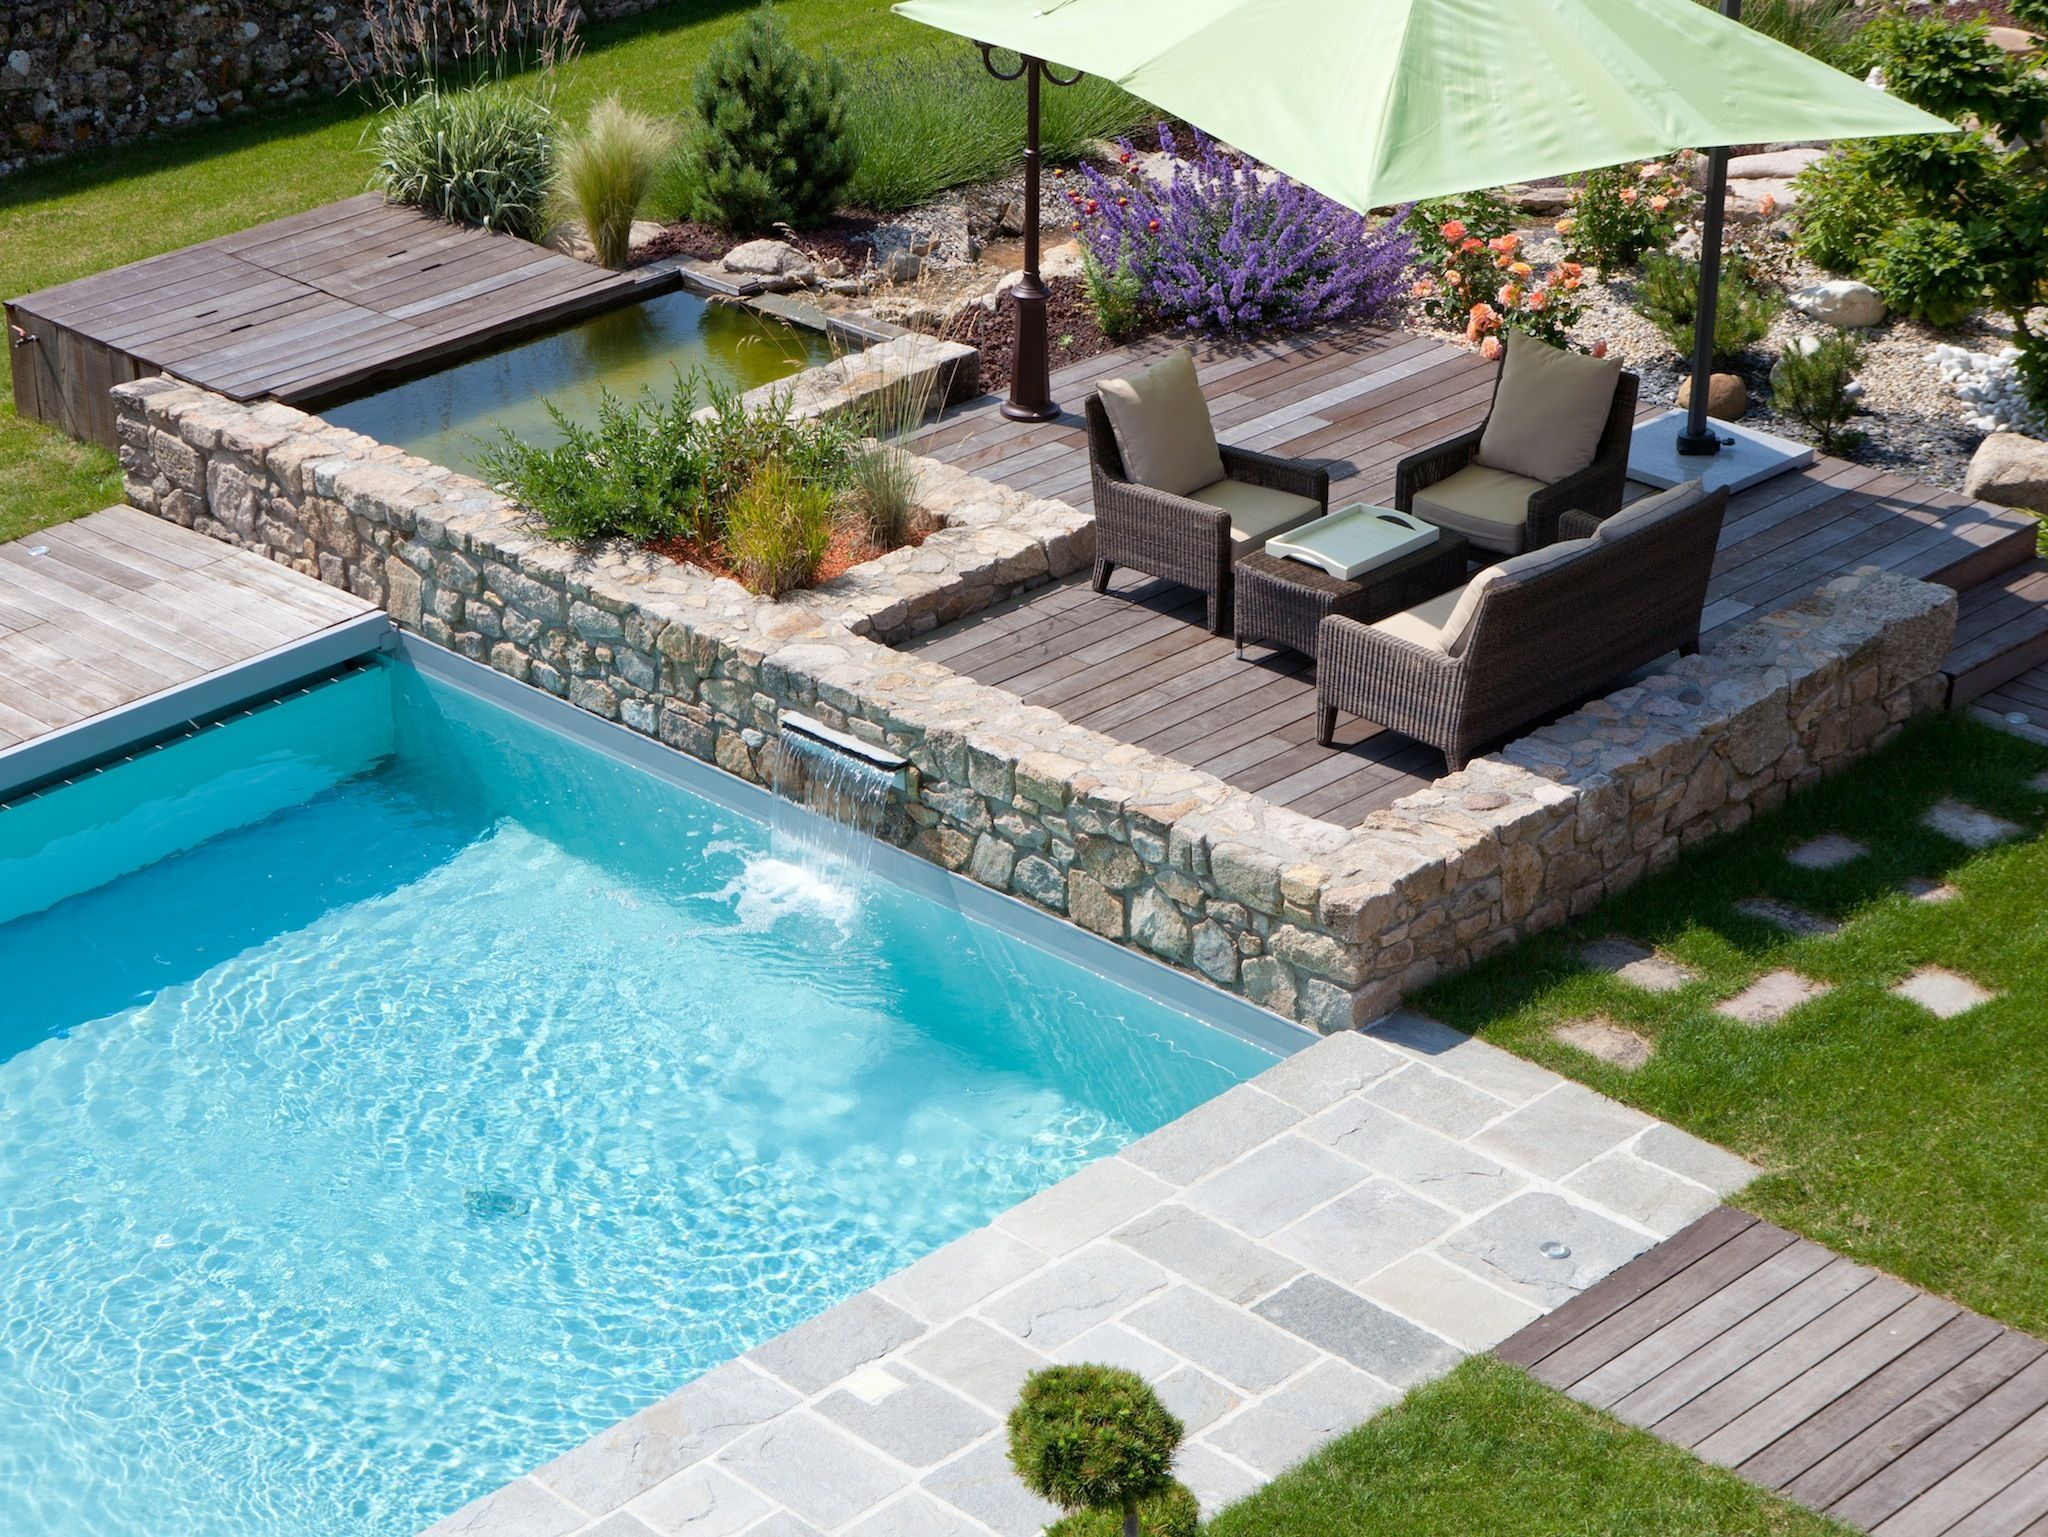 Revetement piscine pierre naturelle for Piscine california 1